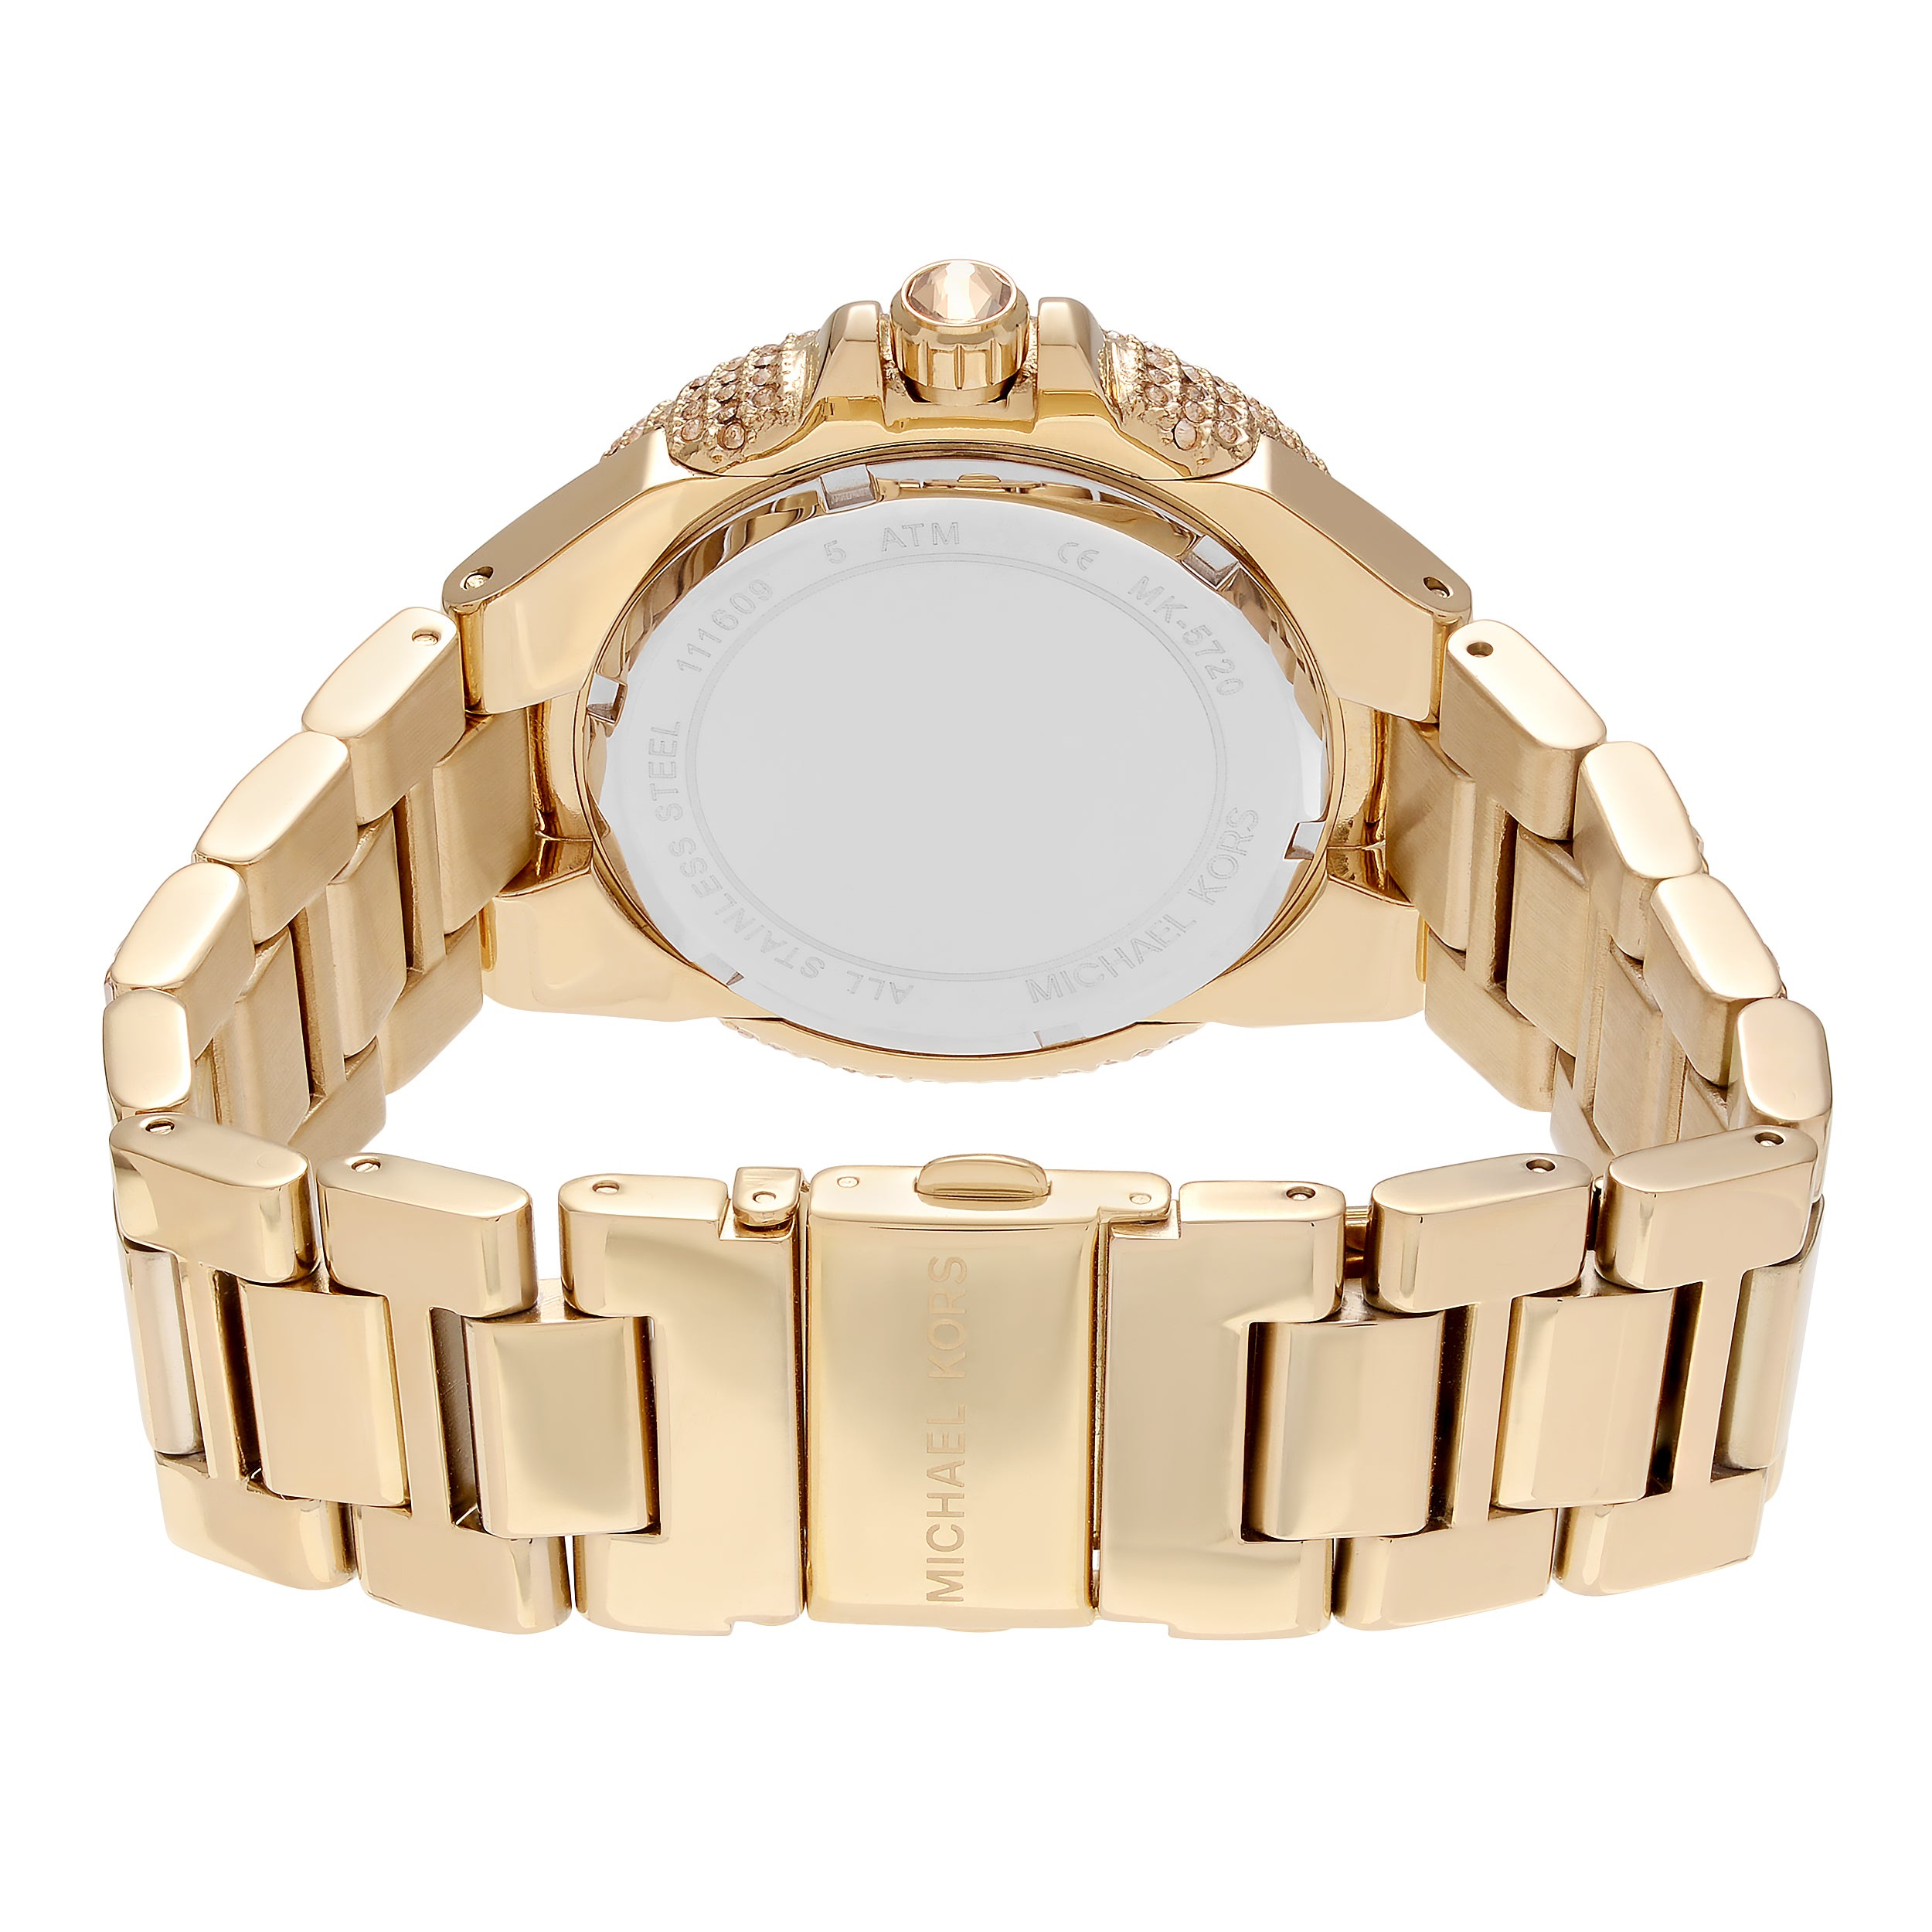 860549b19359 Shop Michael Kors Women s MK5720  Camille  Crystal Glam Goldtone Style Watch  - Free Shipping Today - Overstock - 9358308